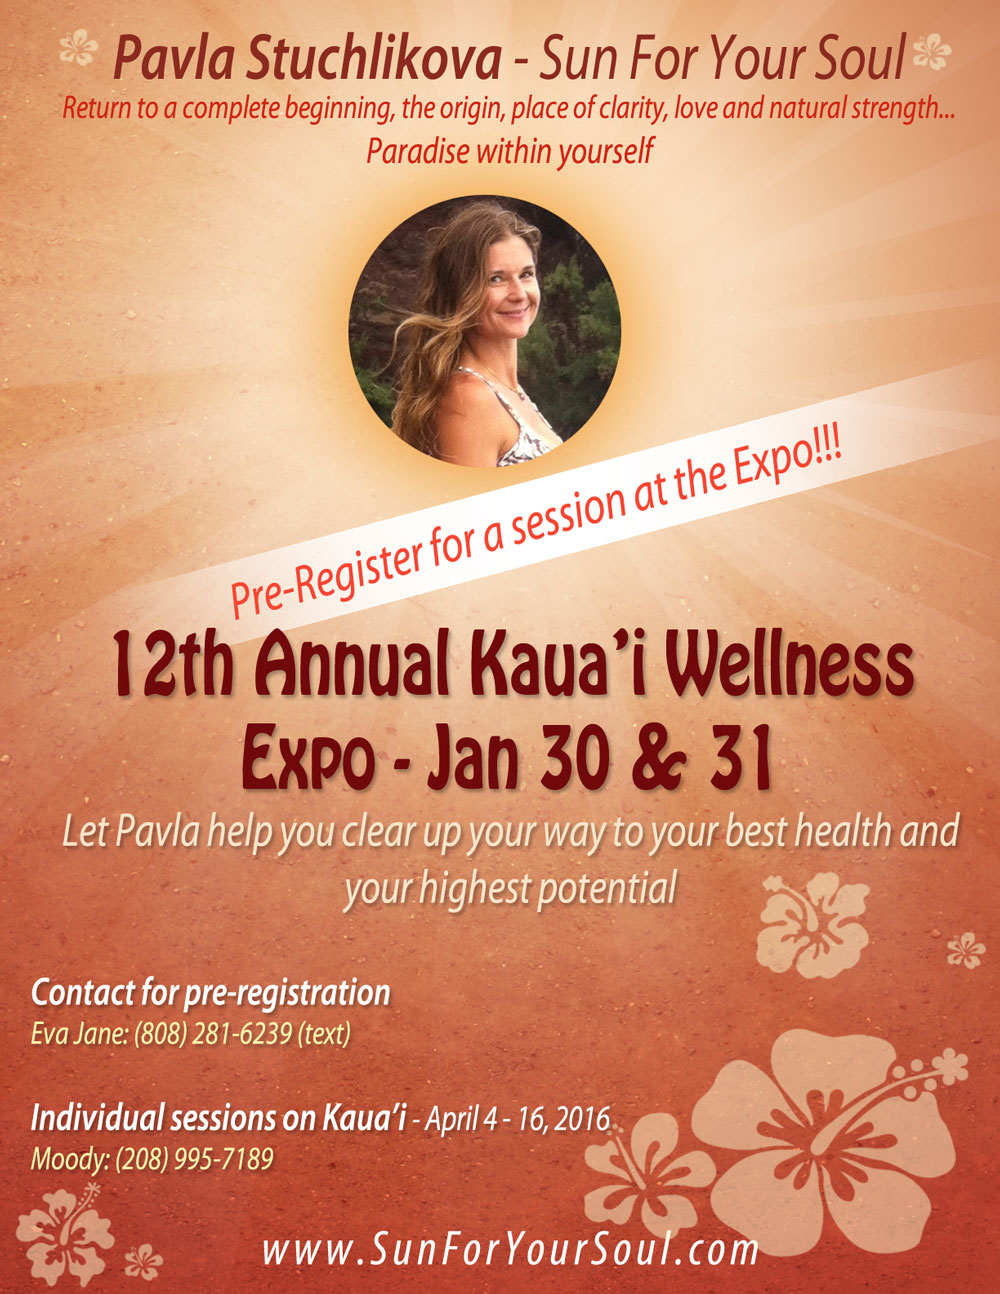 Annual Kaua'i Wellness Expo